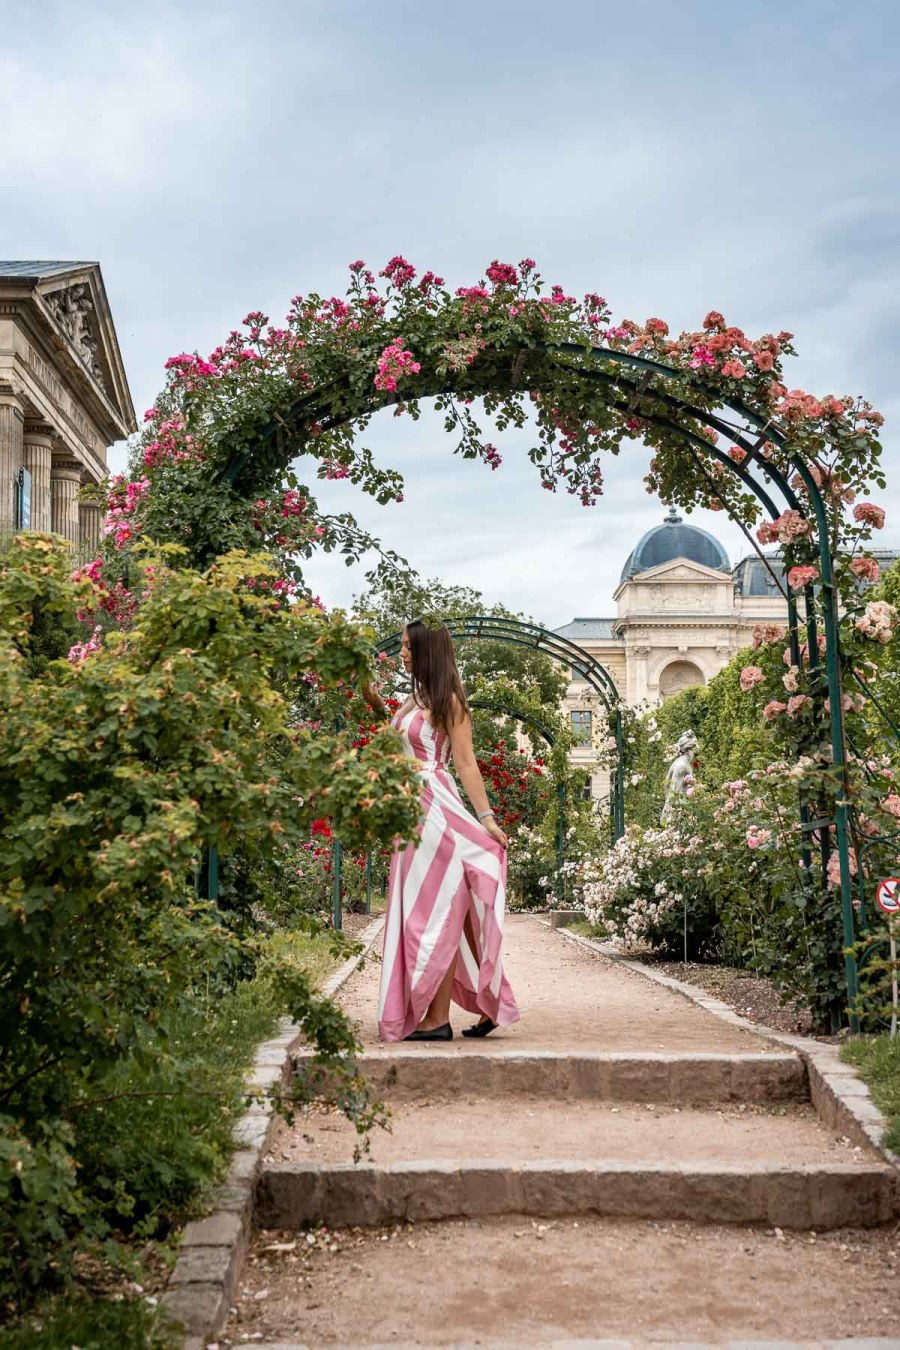 Girl in a pink-white striped dress standing under an archway of roses at Jardin des Plantes in Paris, France